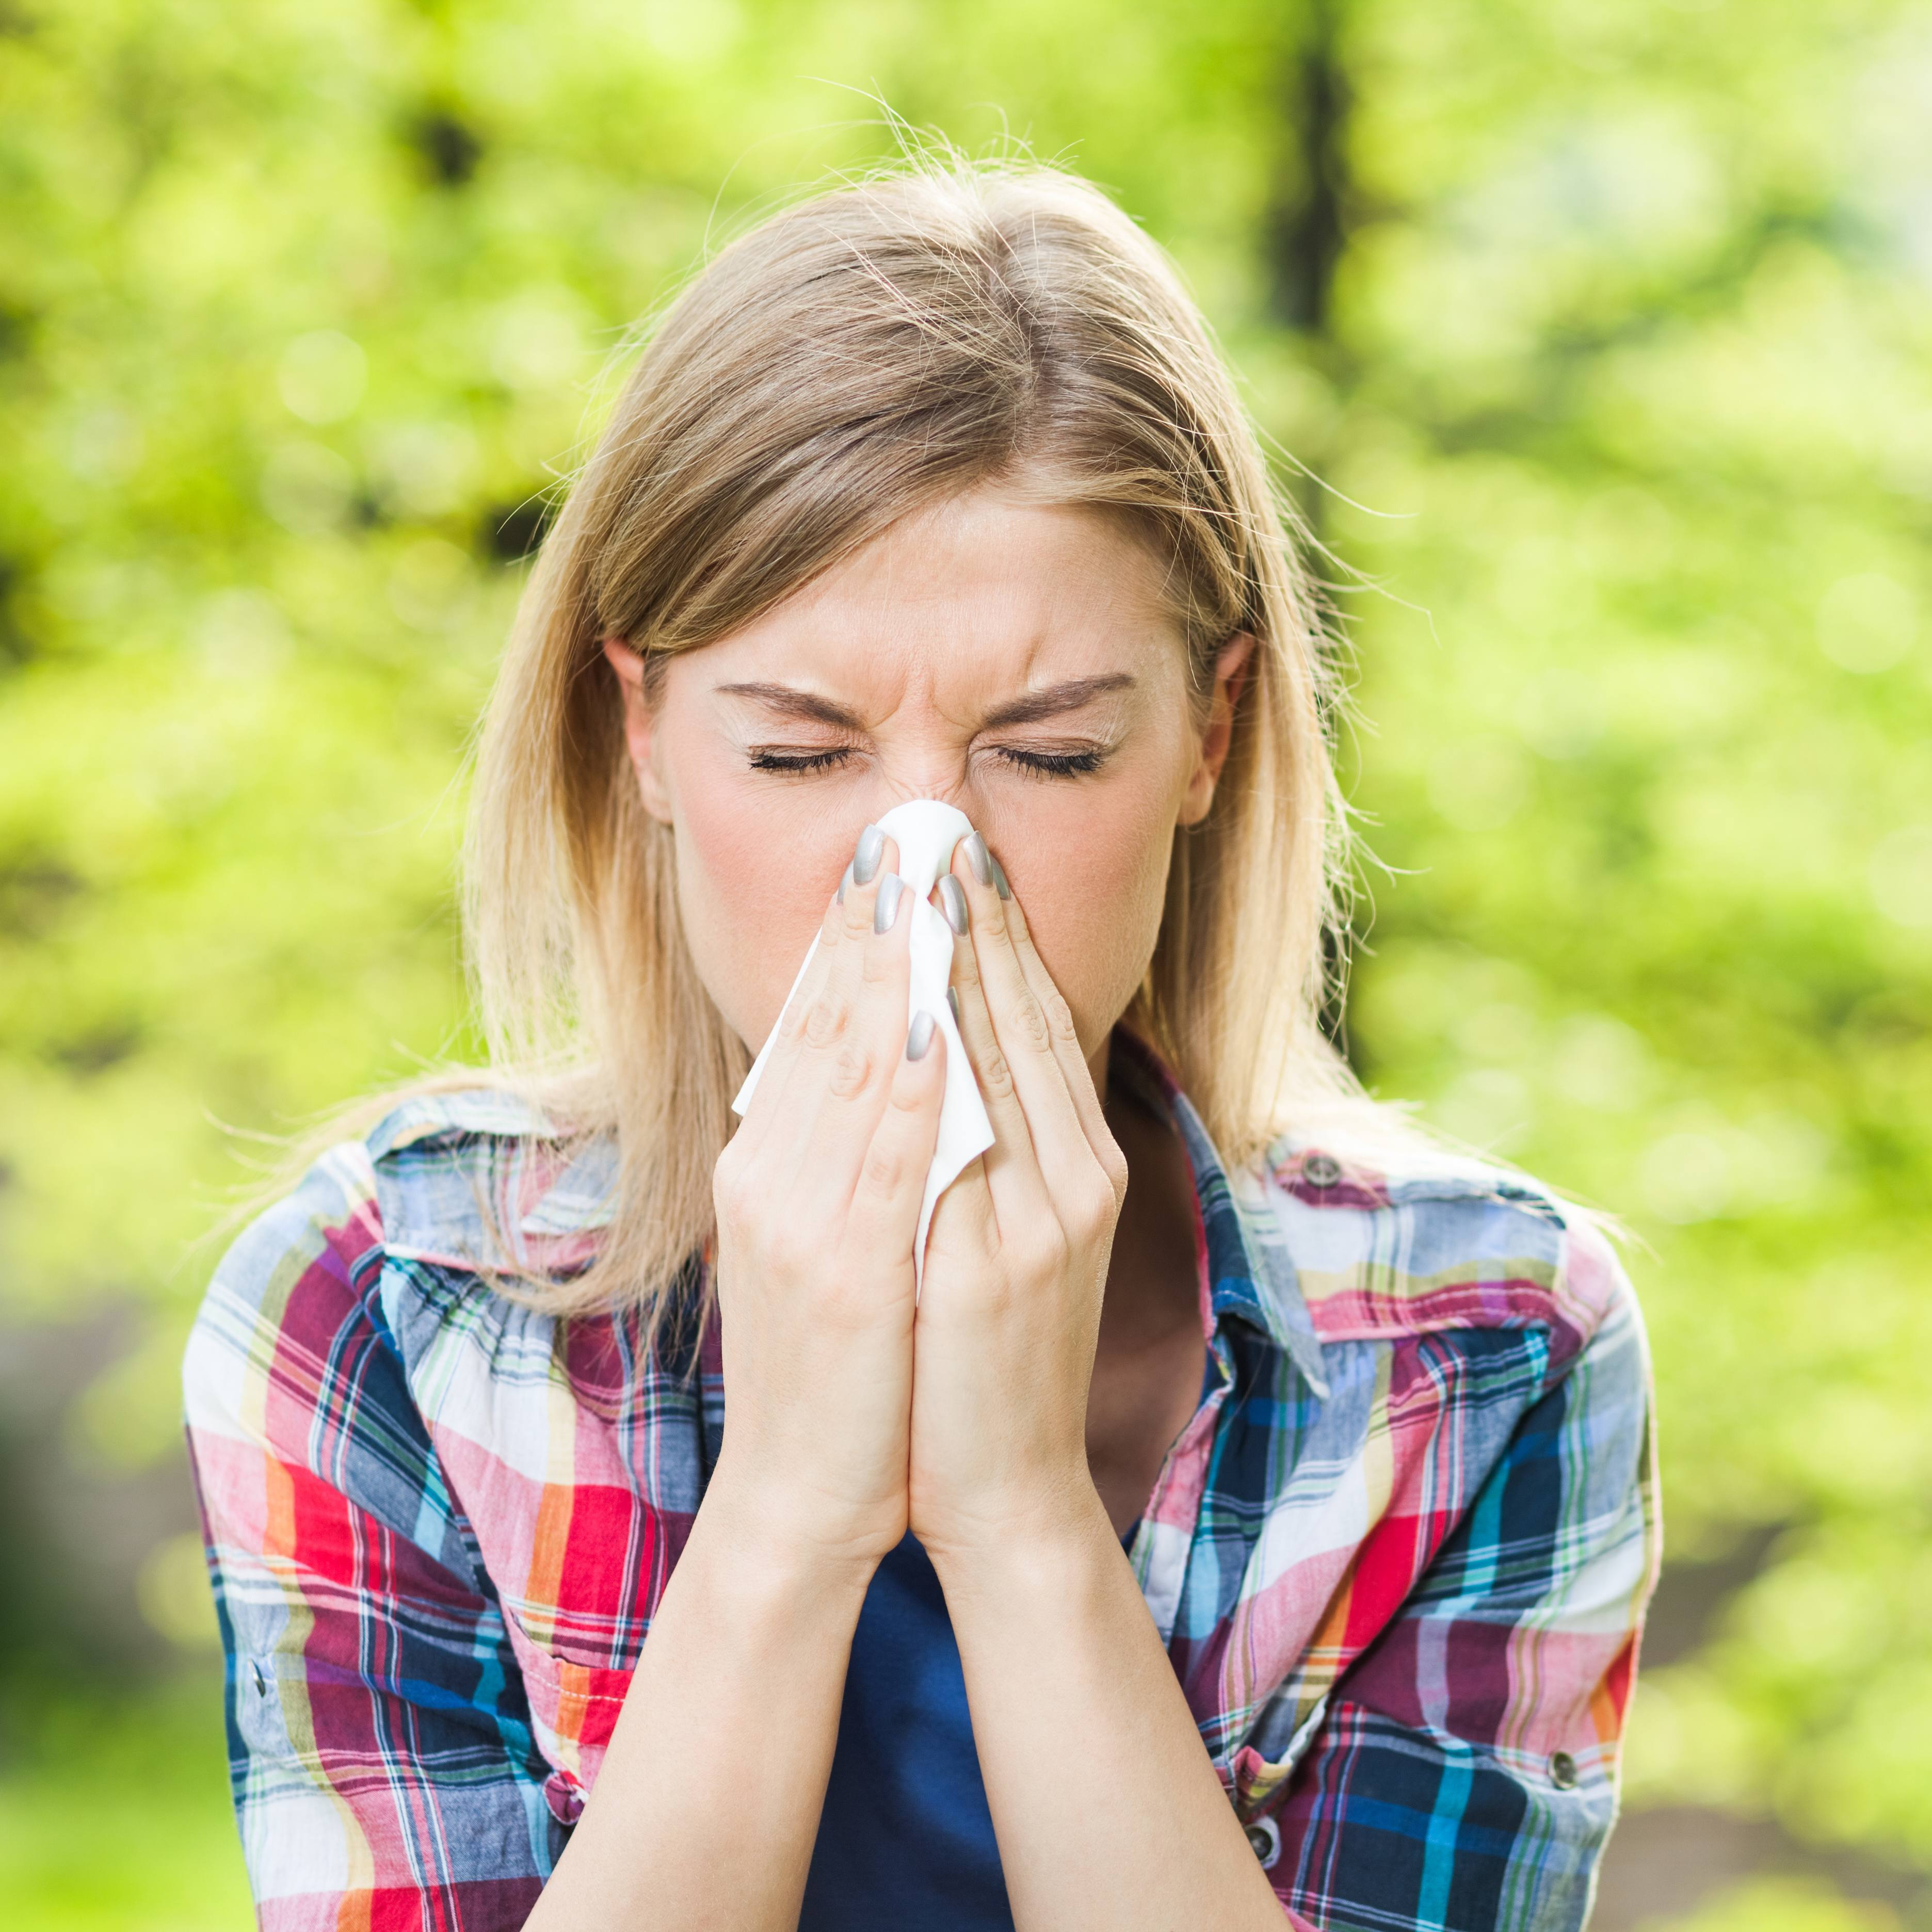 a young woman outside on a bright spring day, sneezing or blowing her nose into a tissue